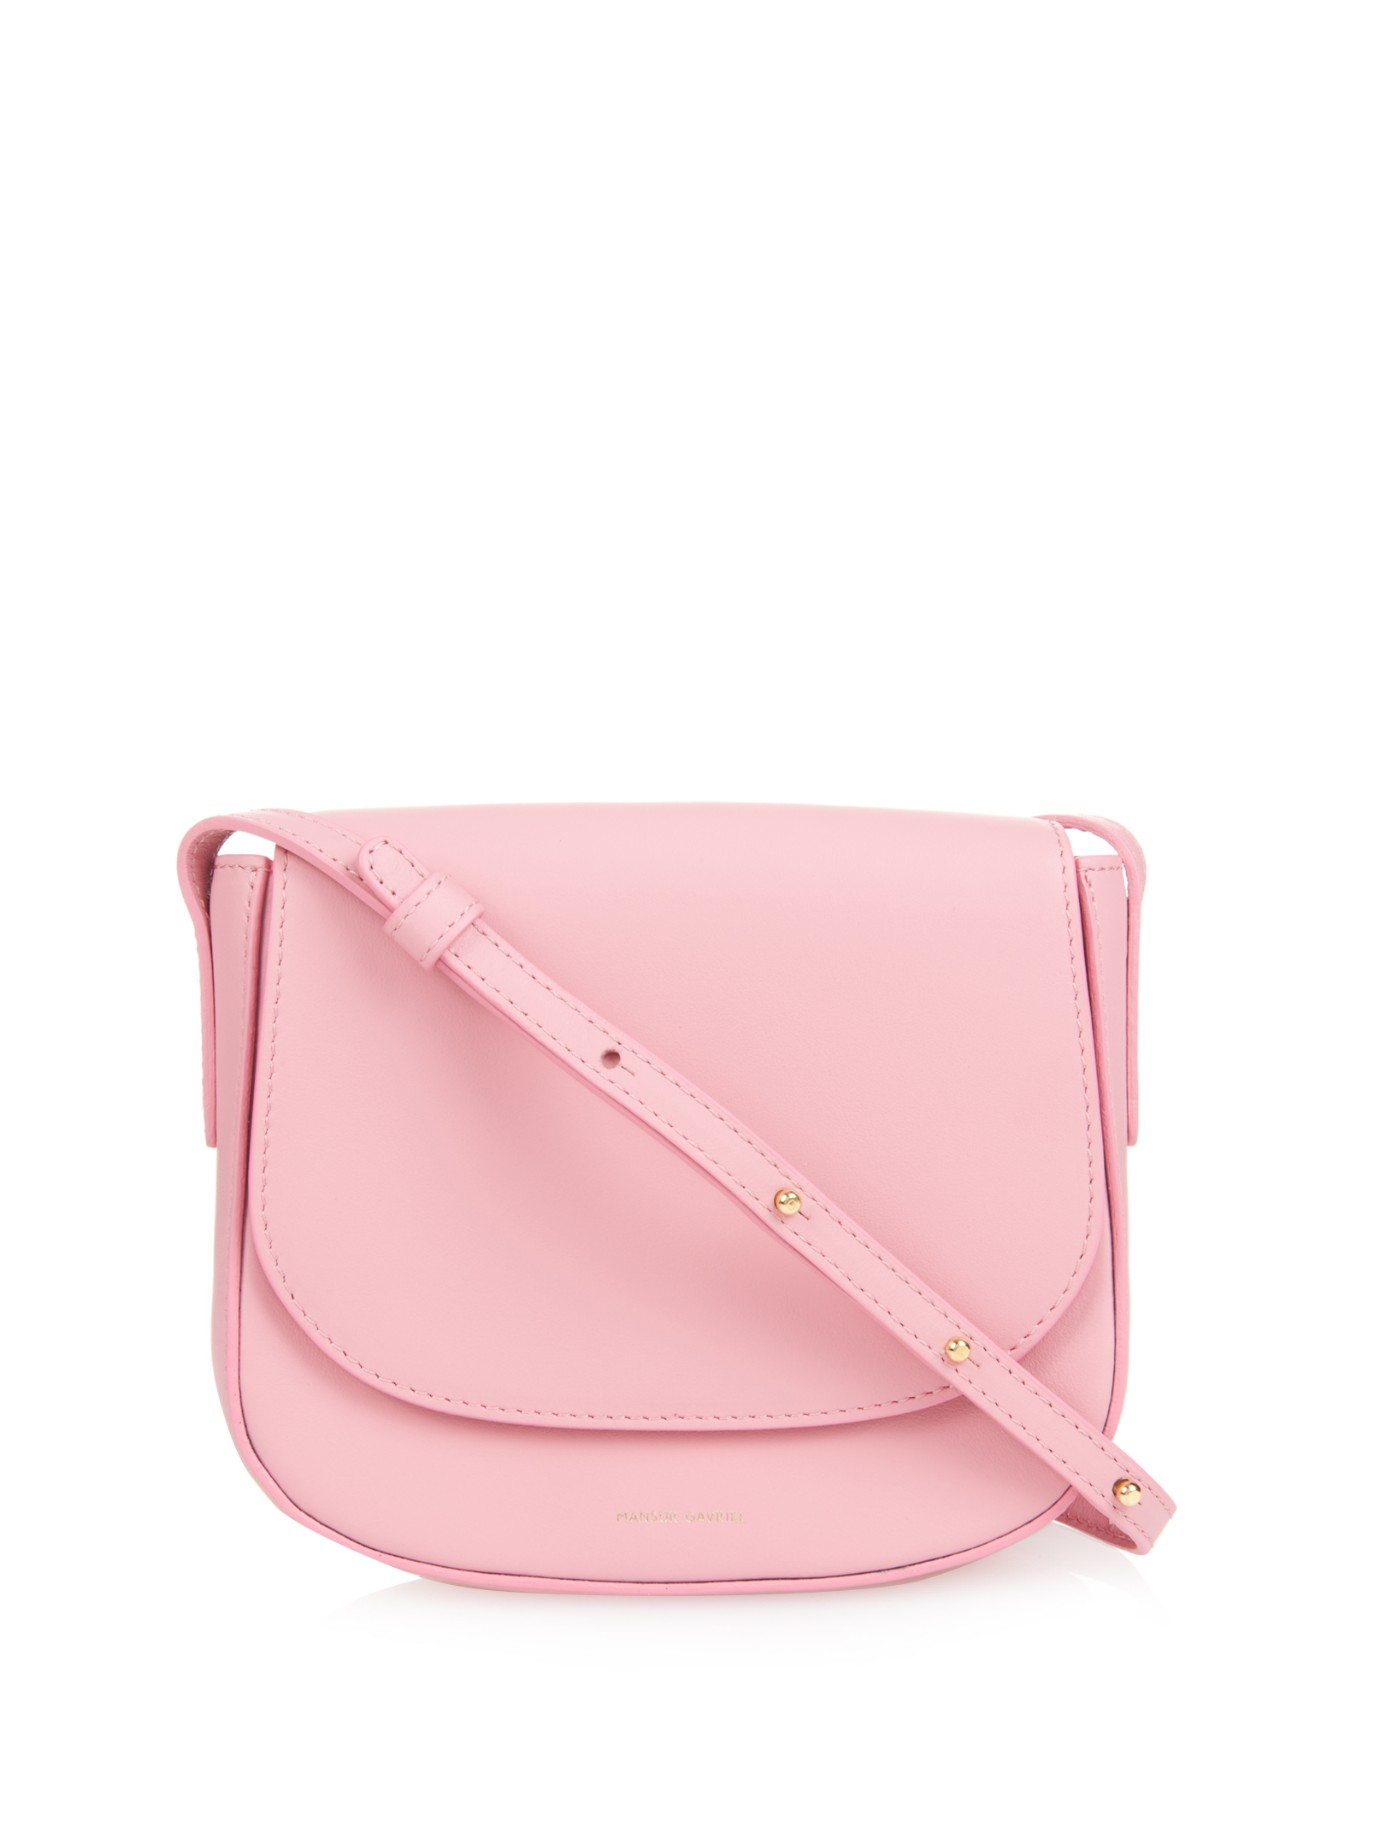 Light Pink Crossbody Purses Best Purse Image Ccdbb